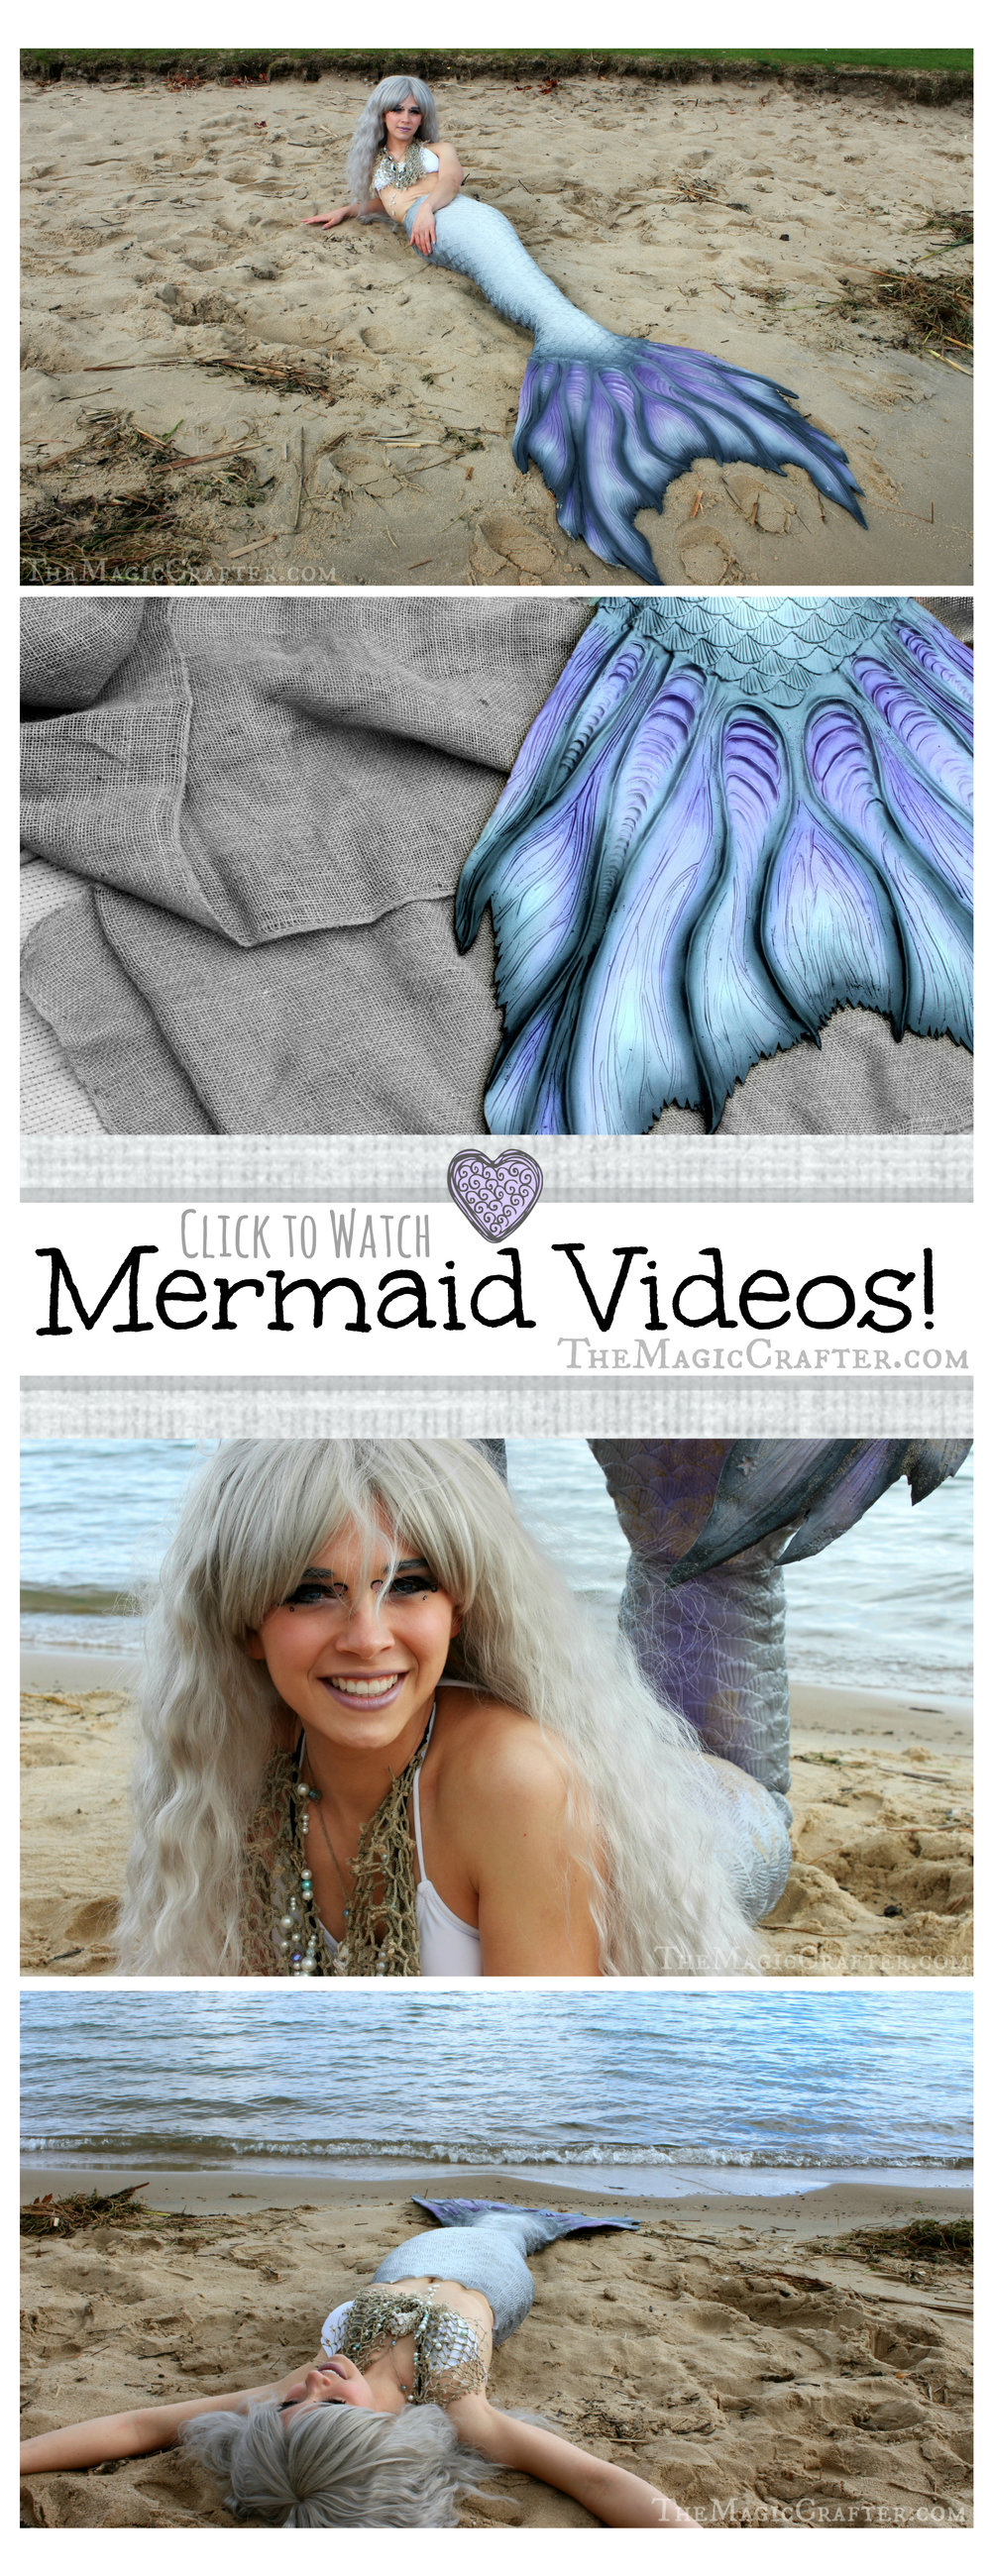 Watch videos of real mermaids and fairy tale creatures by clicking the image!